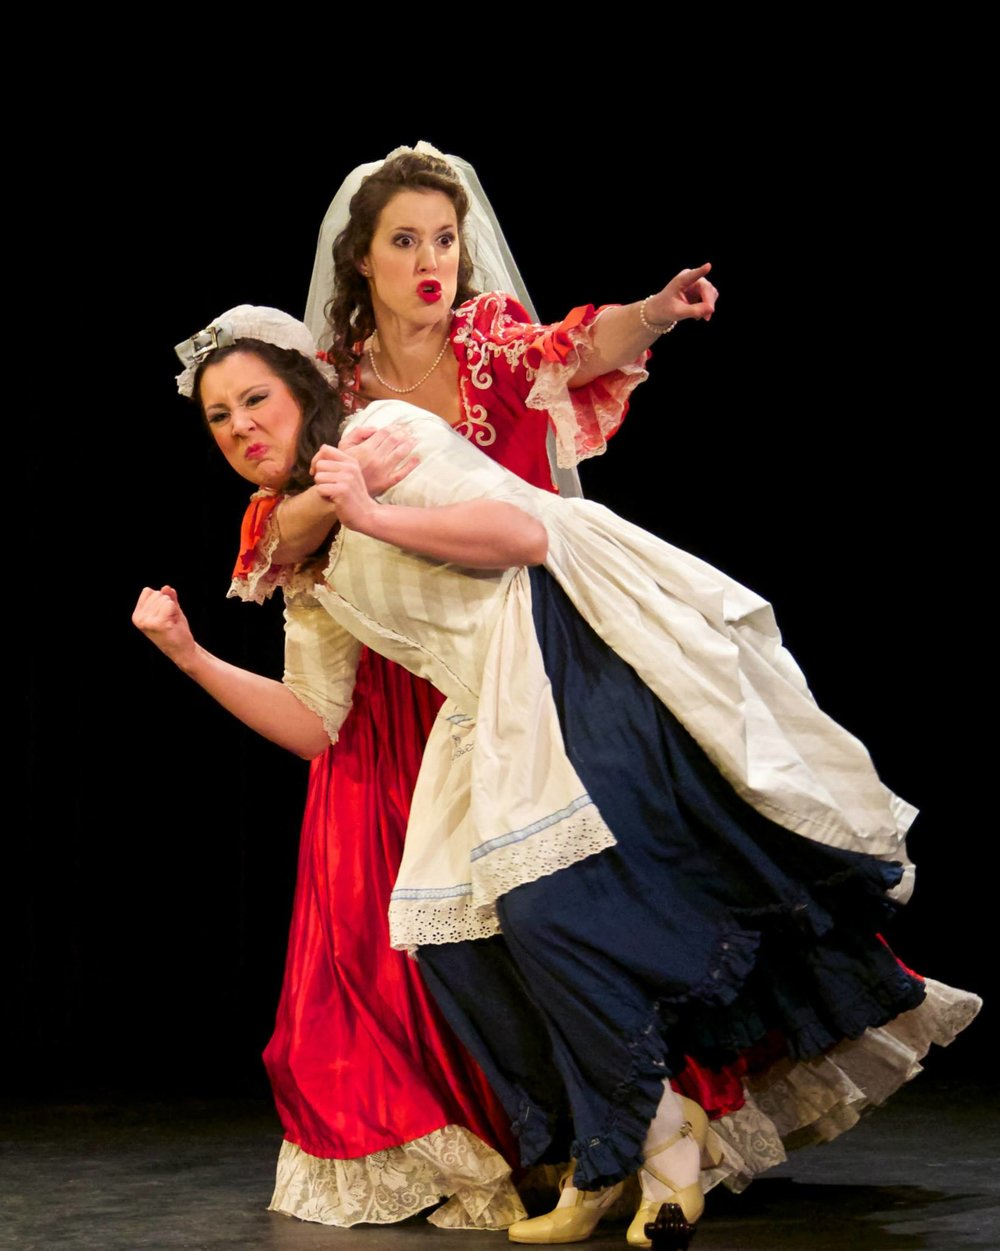 The friendly Clotilde Lombaste ( The New Moon ) with Christina Hager, soprano. (Credit: William Reynolds)